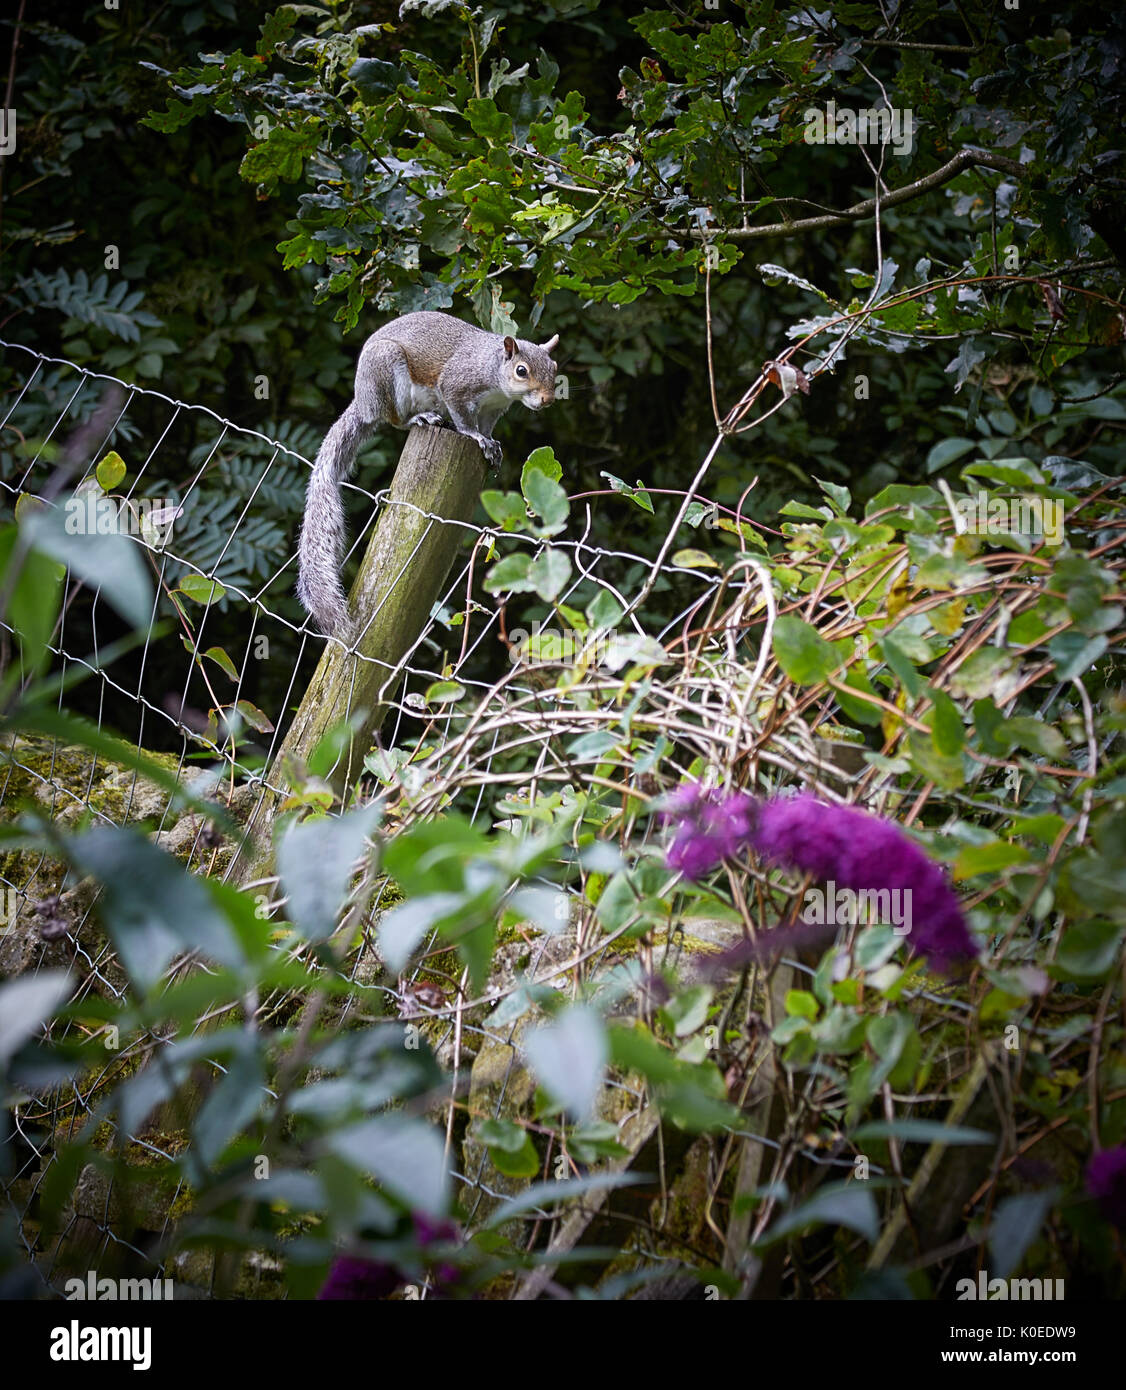 Grey squirrel on fencepost amongst Oak, Ash, Rowan and Honey Suckle. August in Nidderdale, North Yorkshire - Stock Image